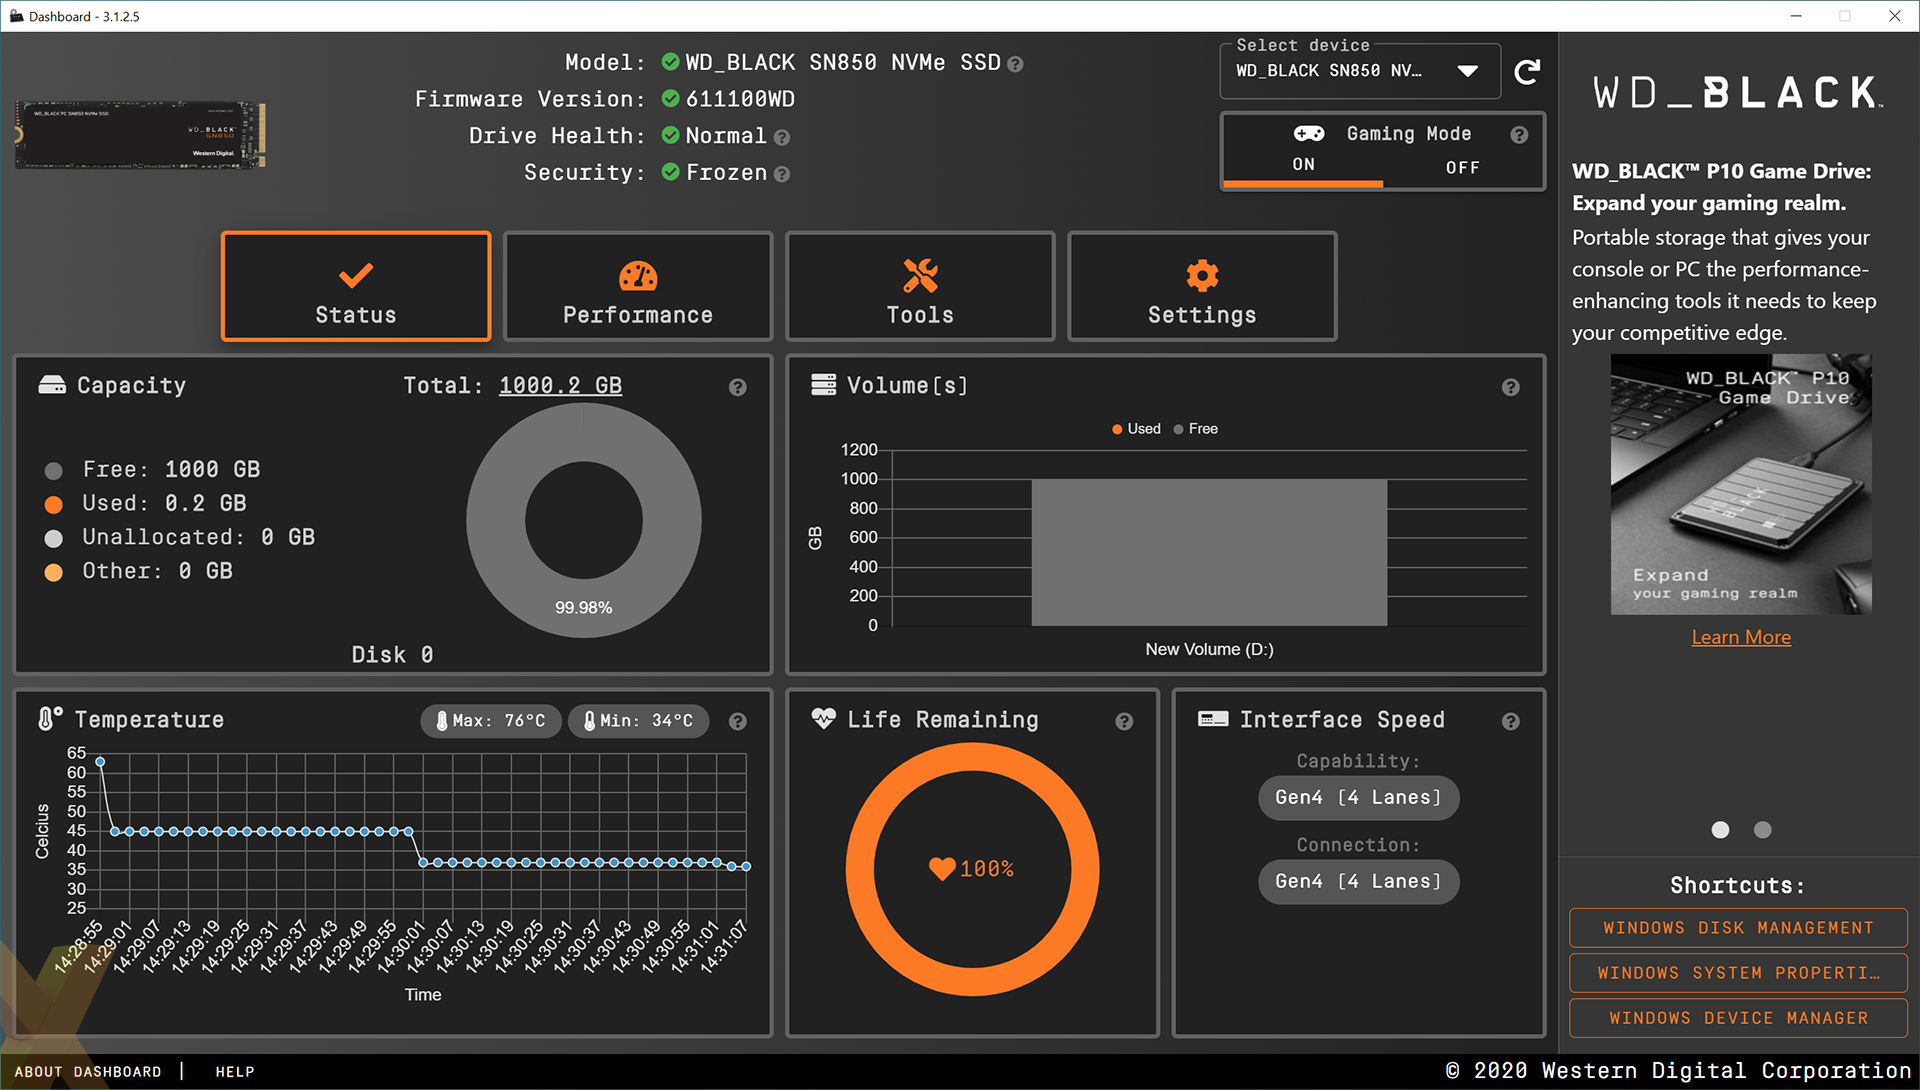 Western Digital Dashboard